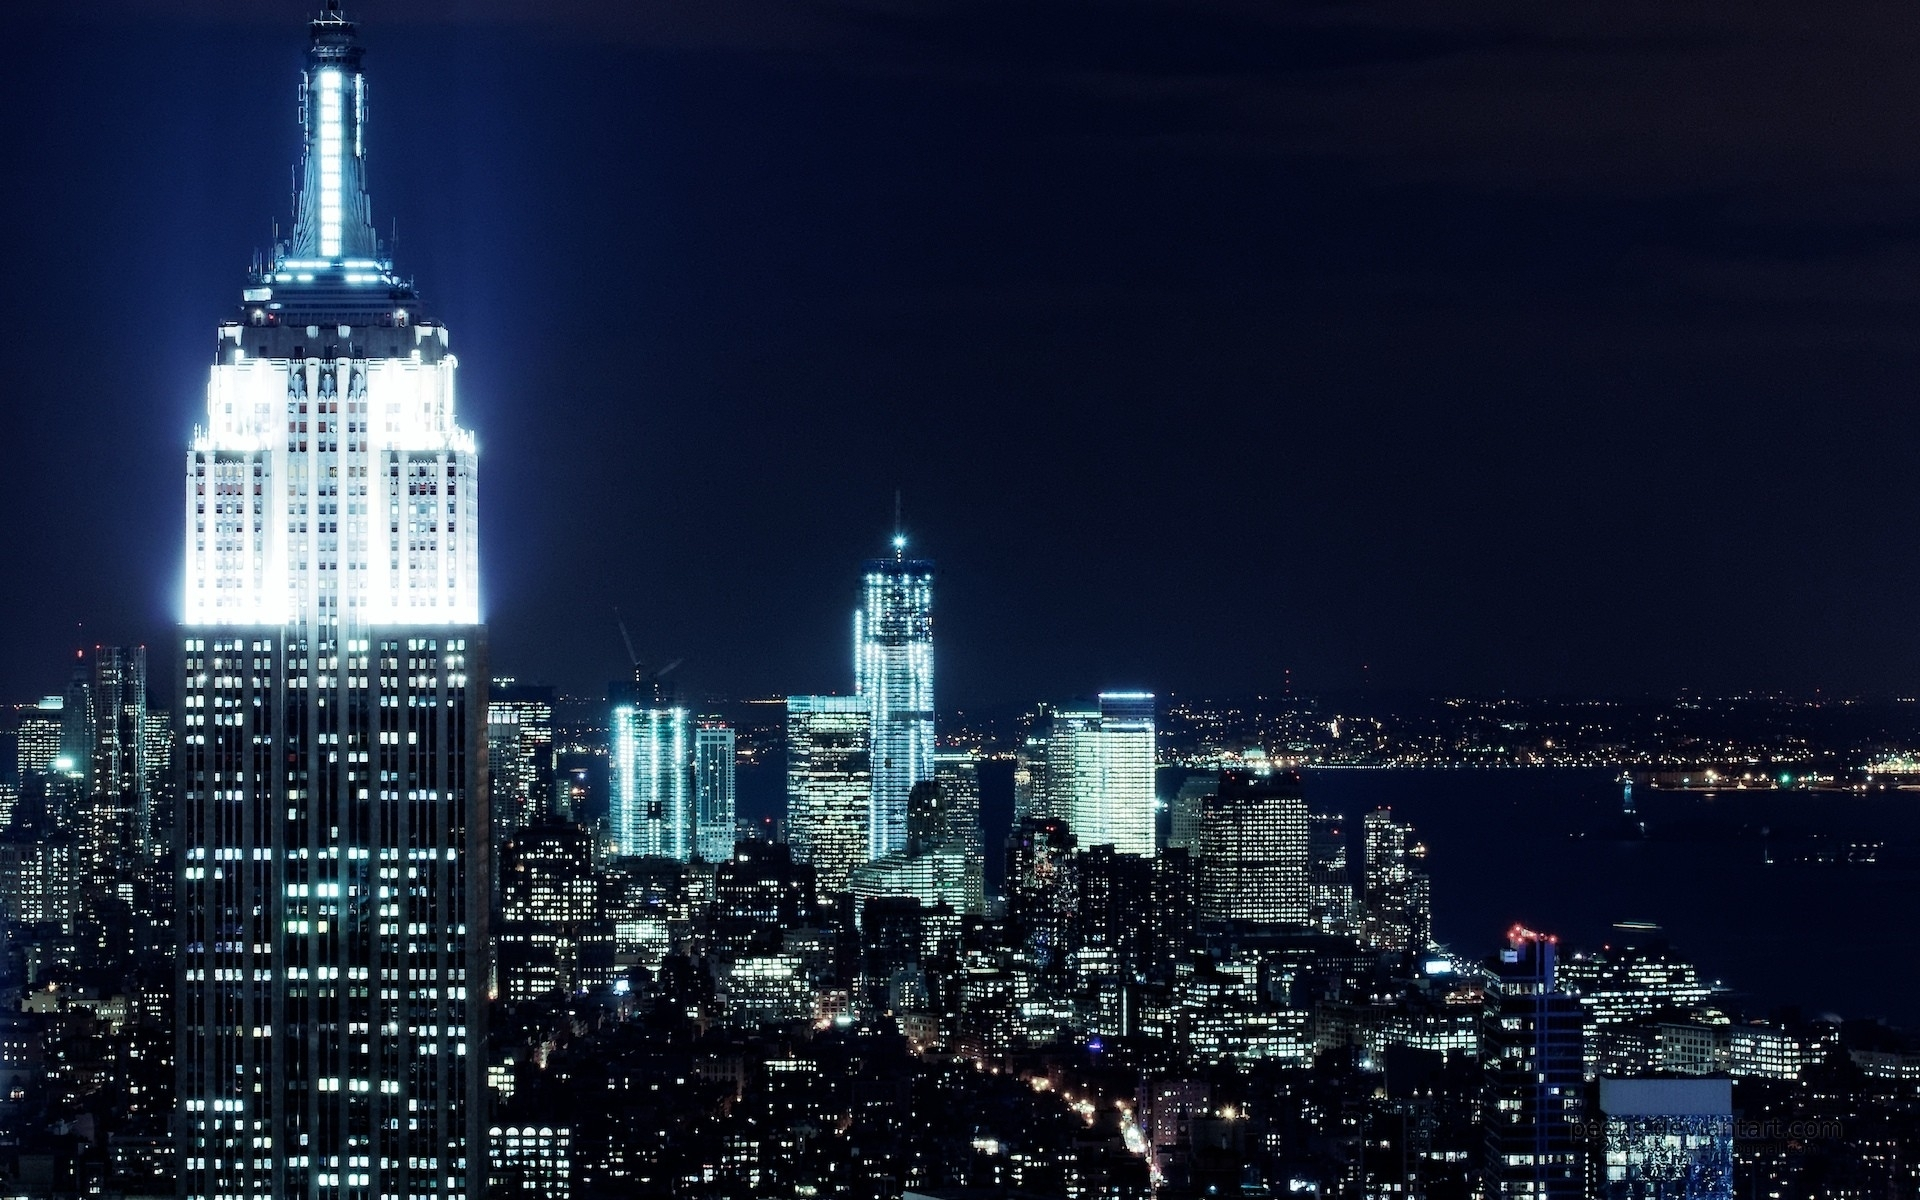 Cool Wallpaper Night Empire State Building - empire-state-building-pictures-30774-31497-hd-wallpapers  2018-496313.jpg